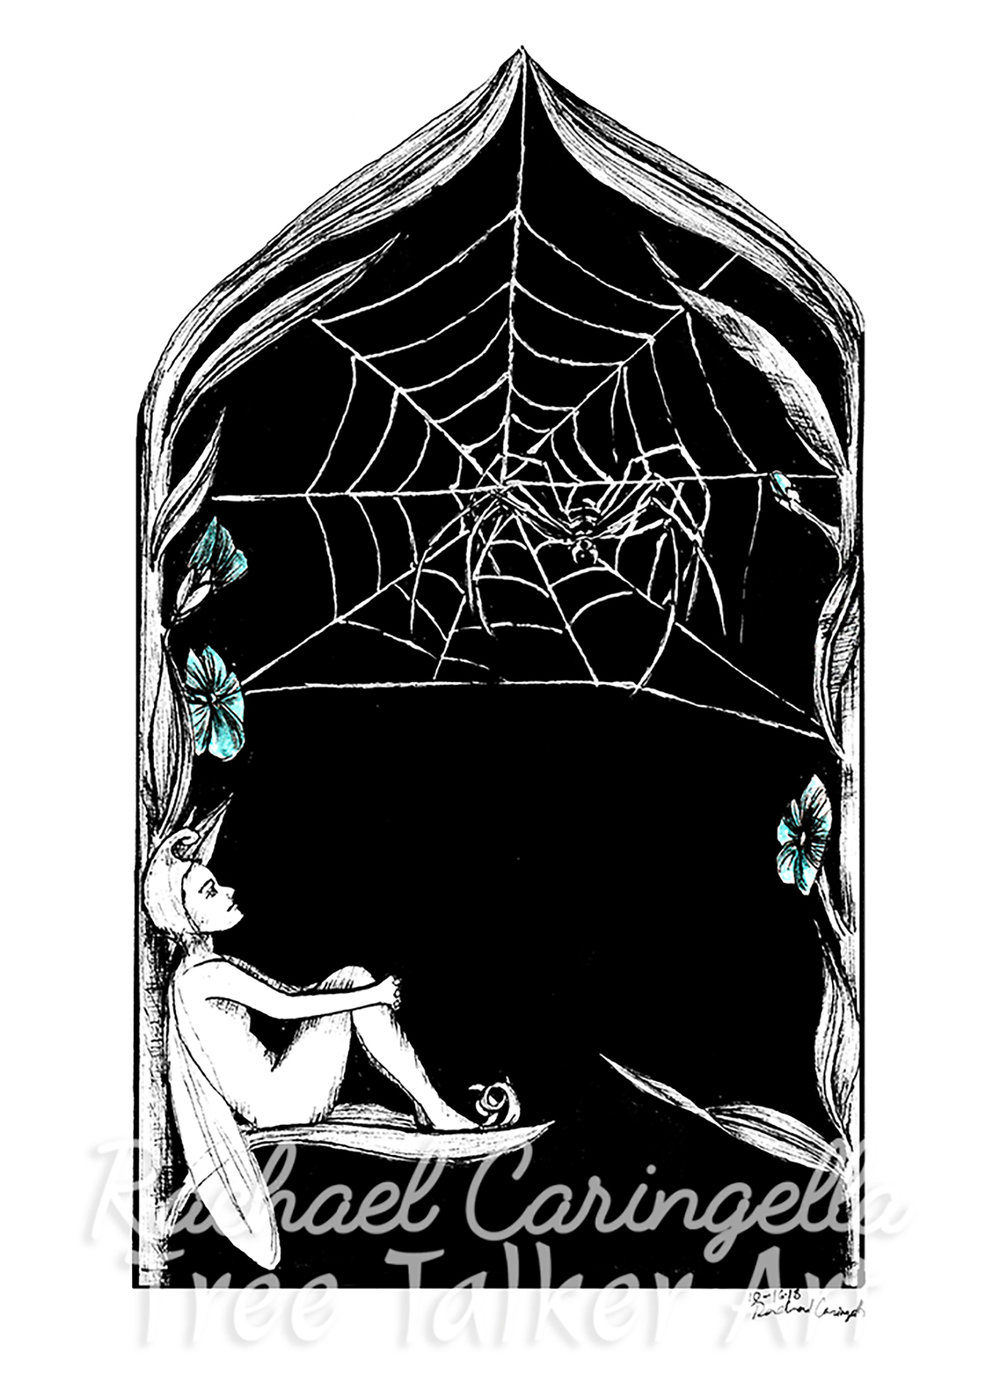 Spider and Fairy Inktober 2018 Illustration of a Spider and Fairy